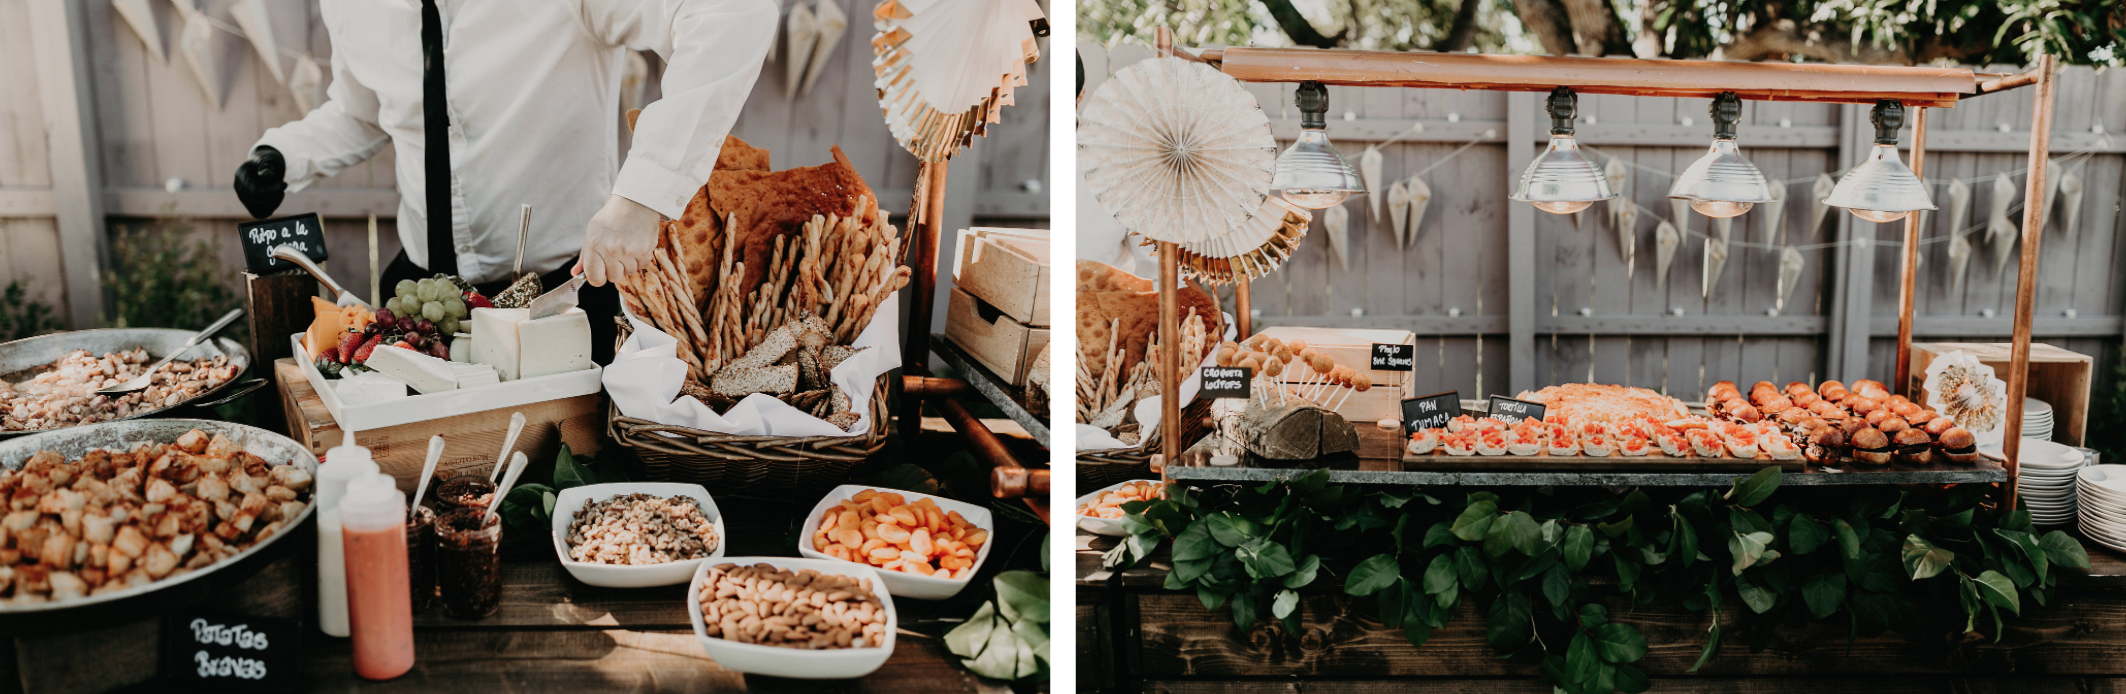 4-in-1-Creative-Party-at-The-Creatives-Loft-Baby-Shower-Party-Pinterest-Wedding-and-Event-Planner-Miami-11.png